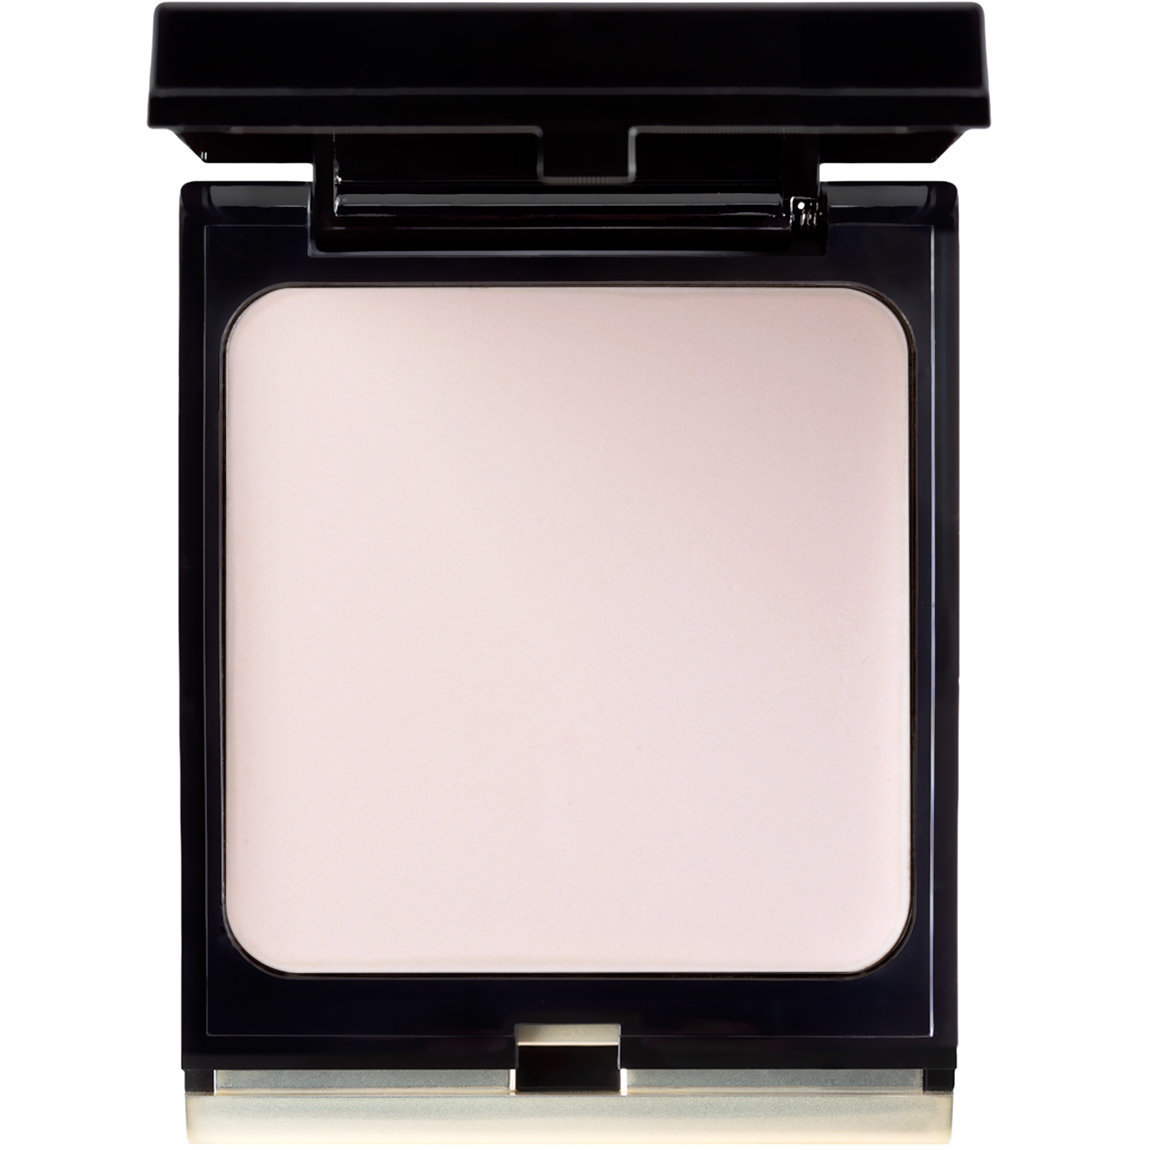 Kevyn Aucoin The Guardian Angel Cream Highlighter product smear.